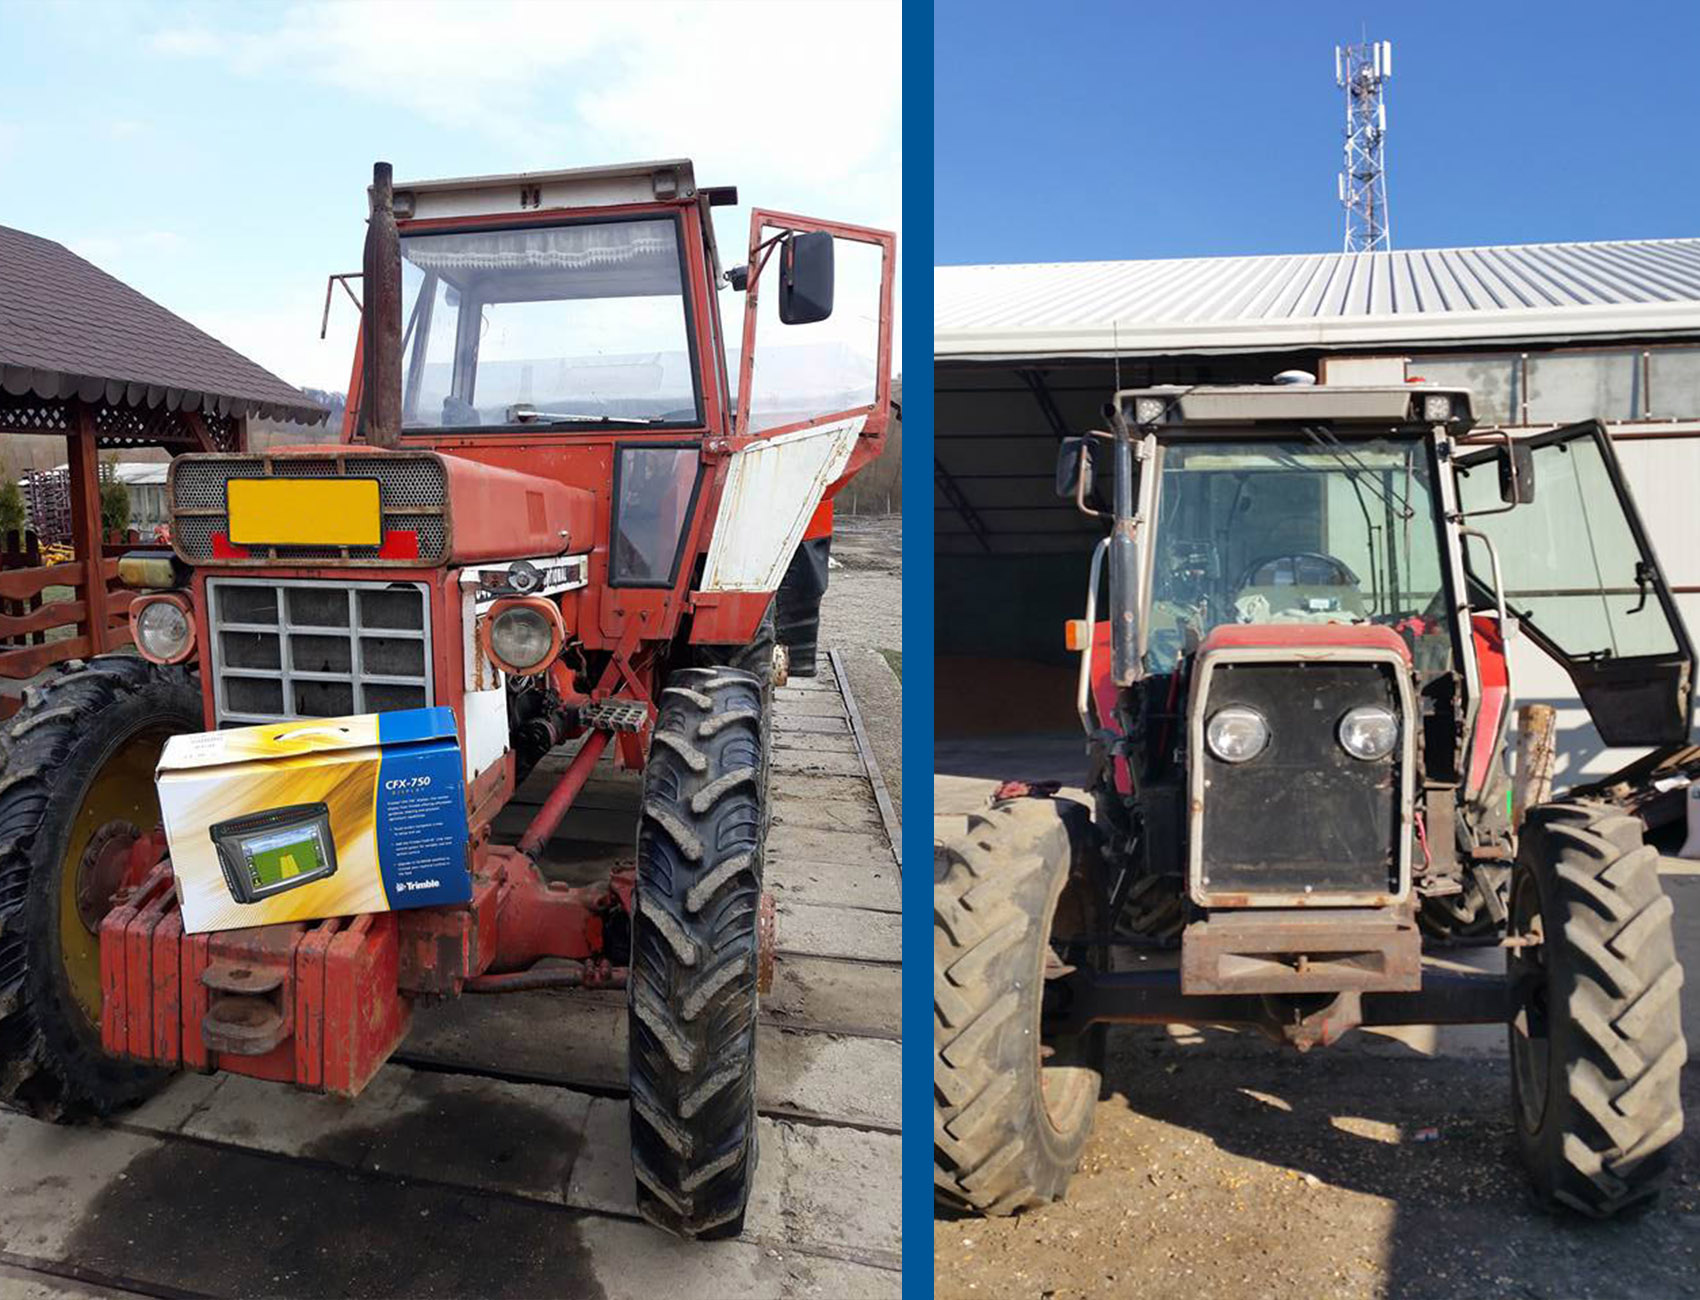 5 reasons upgrading an old tractor pays off